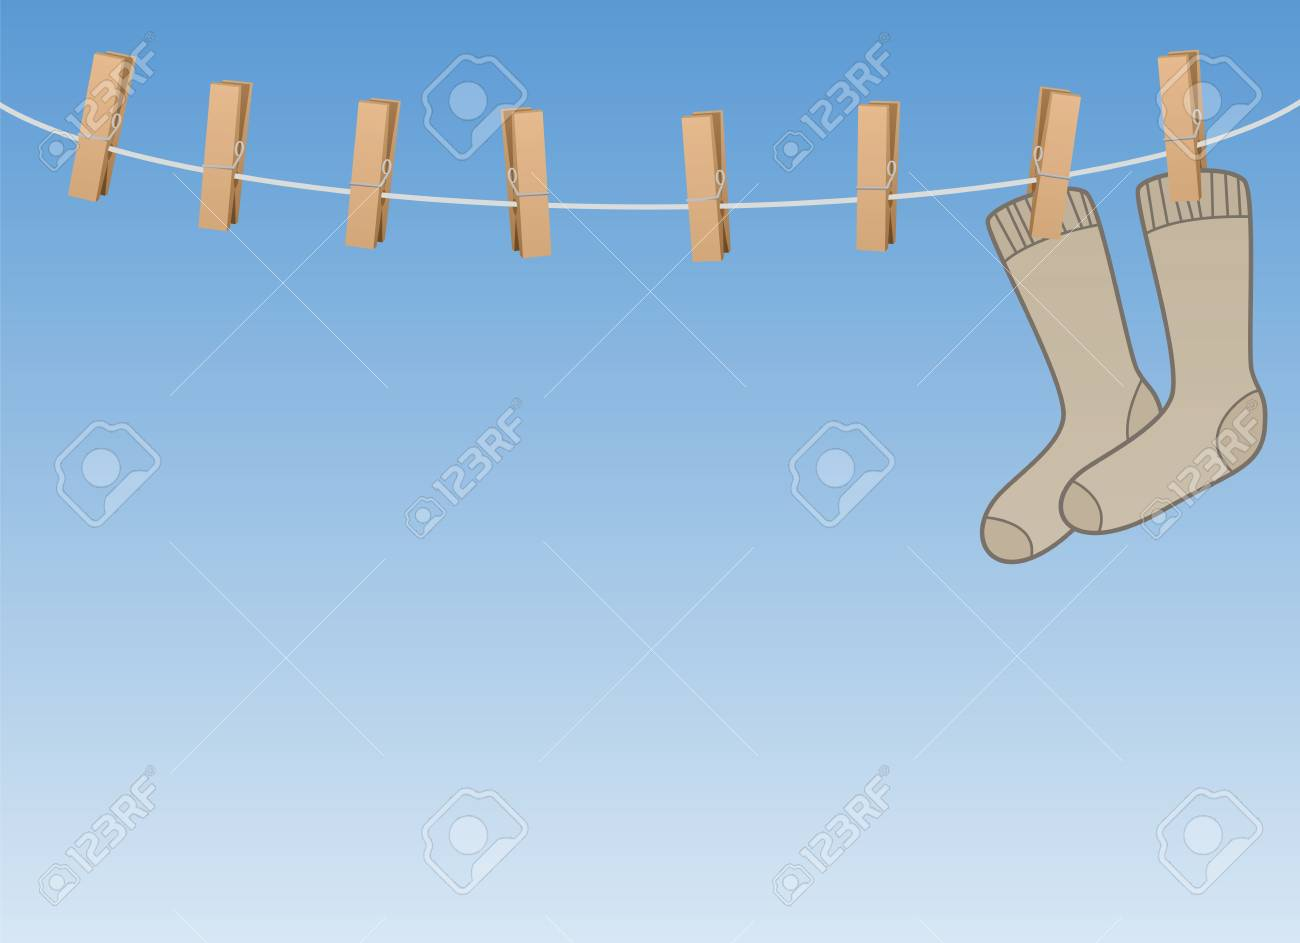 Lonesome Socks Hanging All Alone On A Clothes Line - Symbol For ...